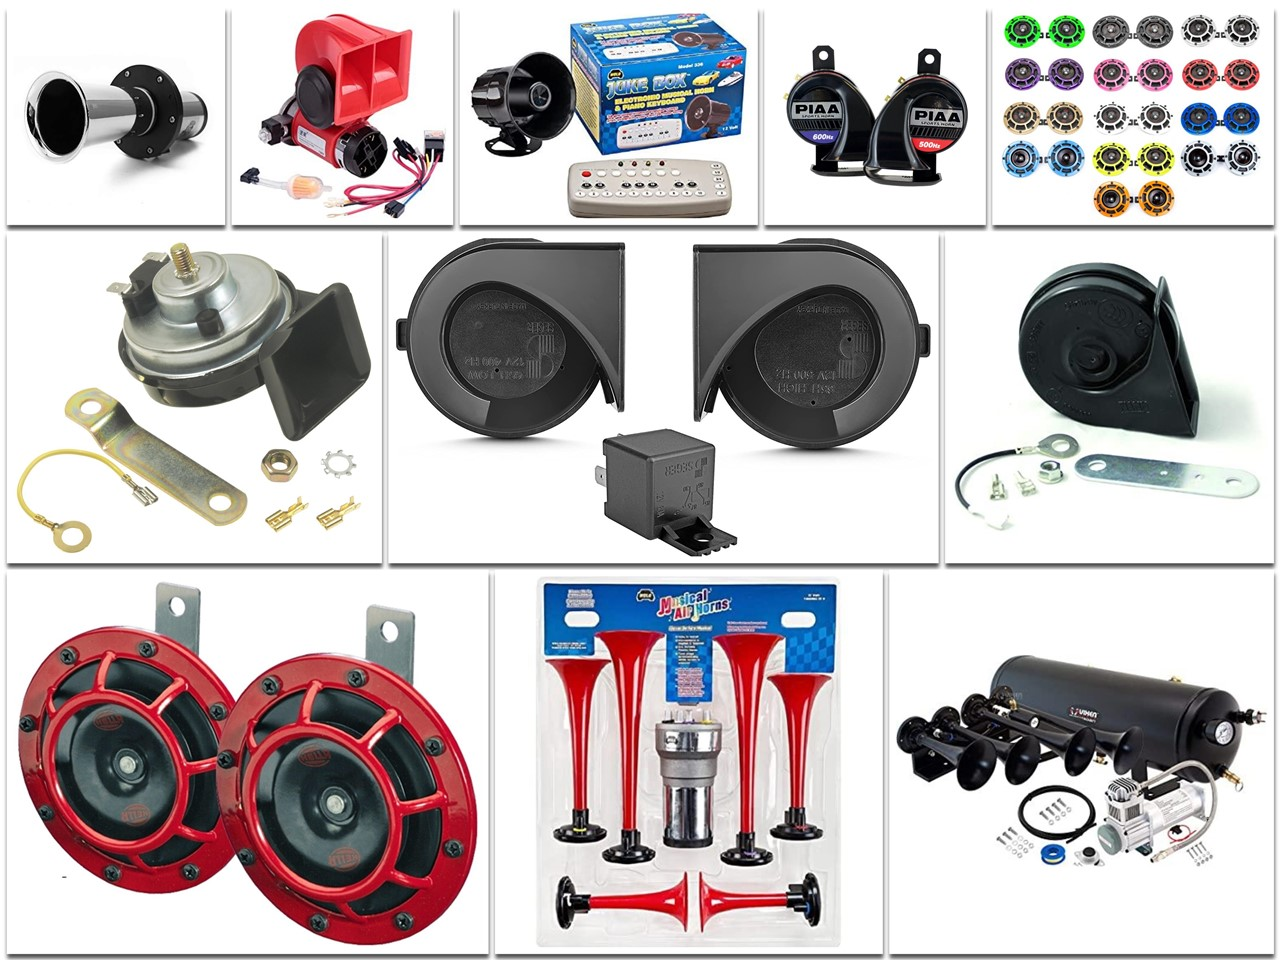 Types of Vehicle Horn